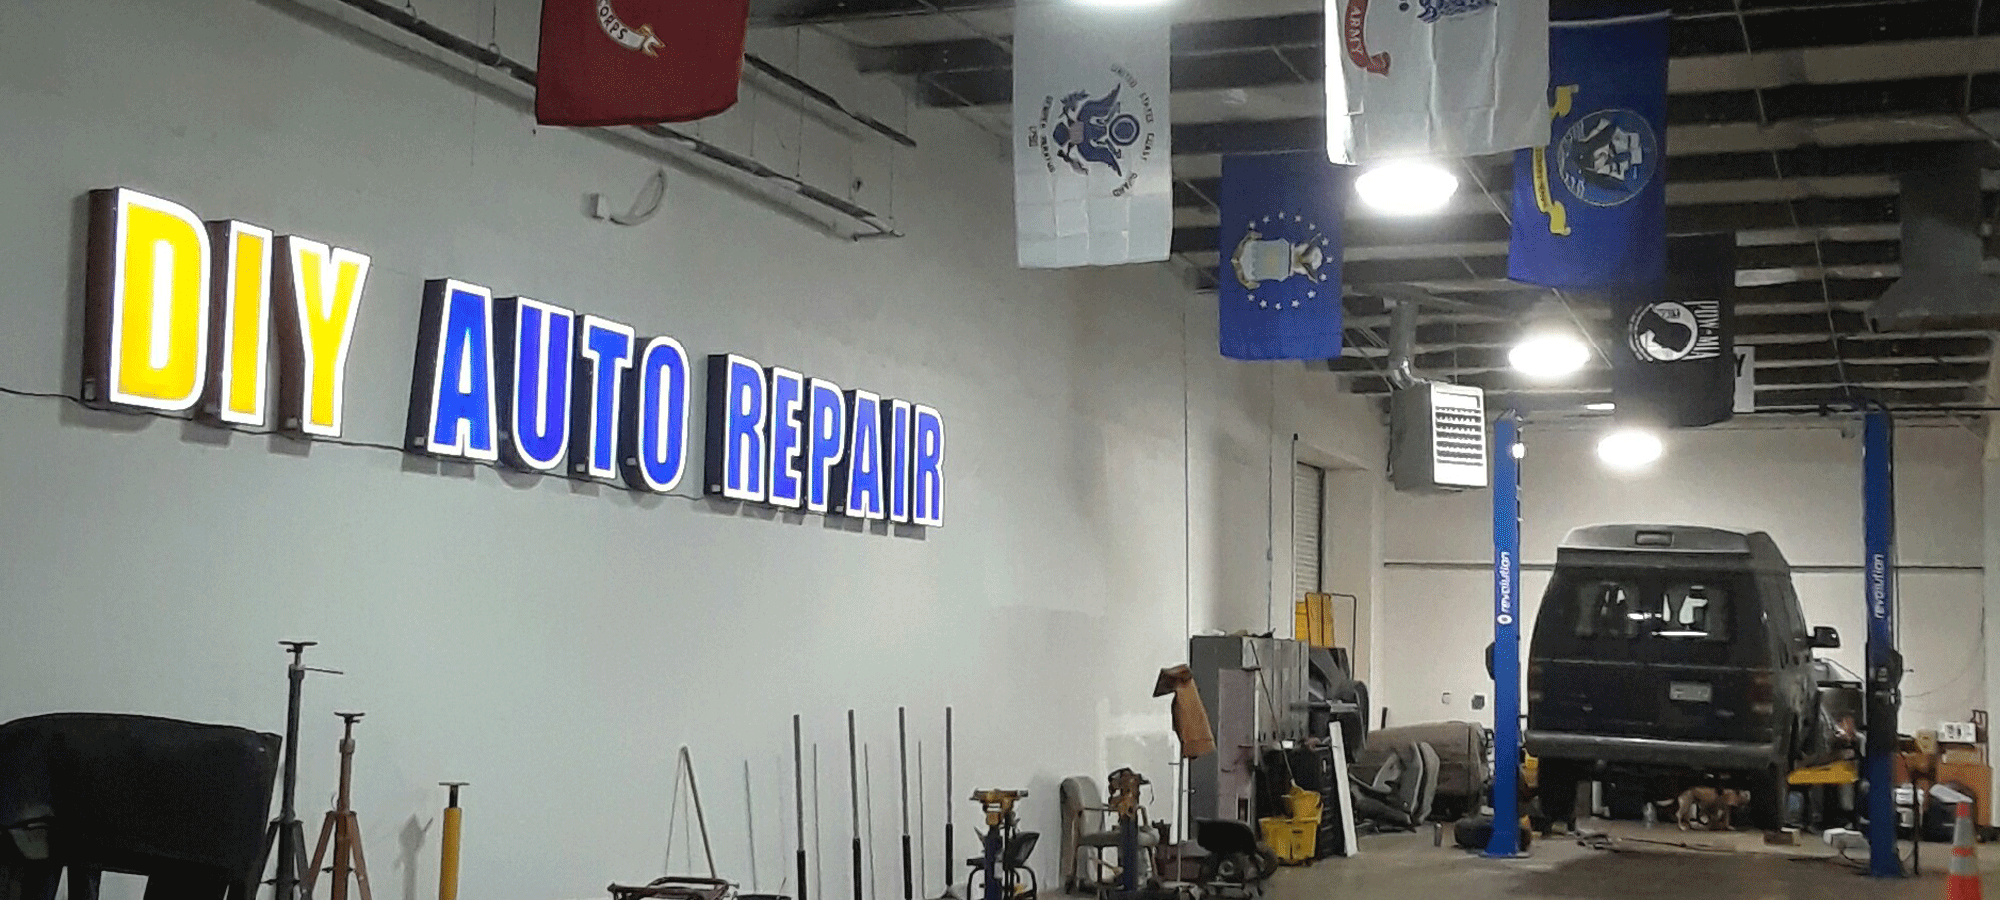 Diy auto repair shops equipped self service garage bays ase master certified technicians we can assist you with your car repair solutioingenieria Gallery